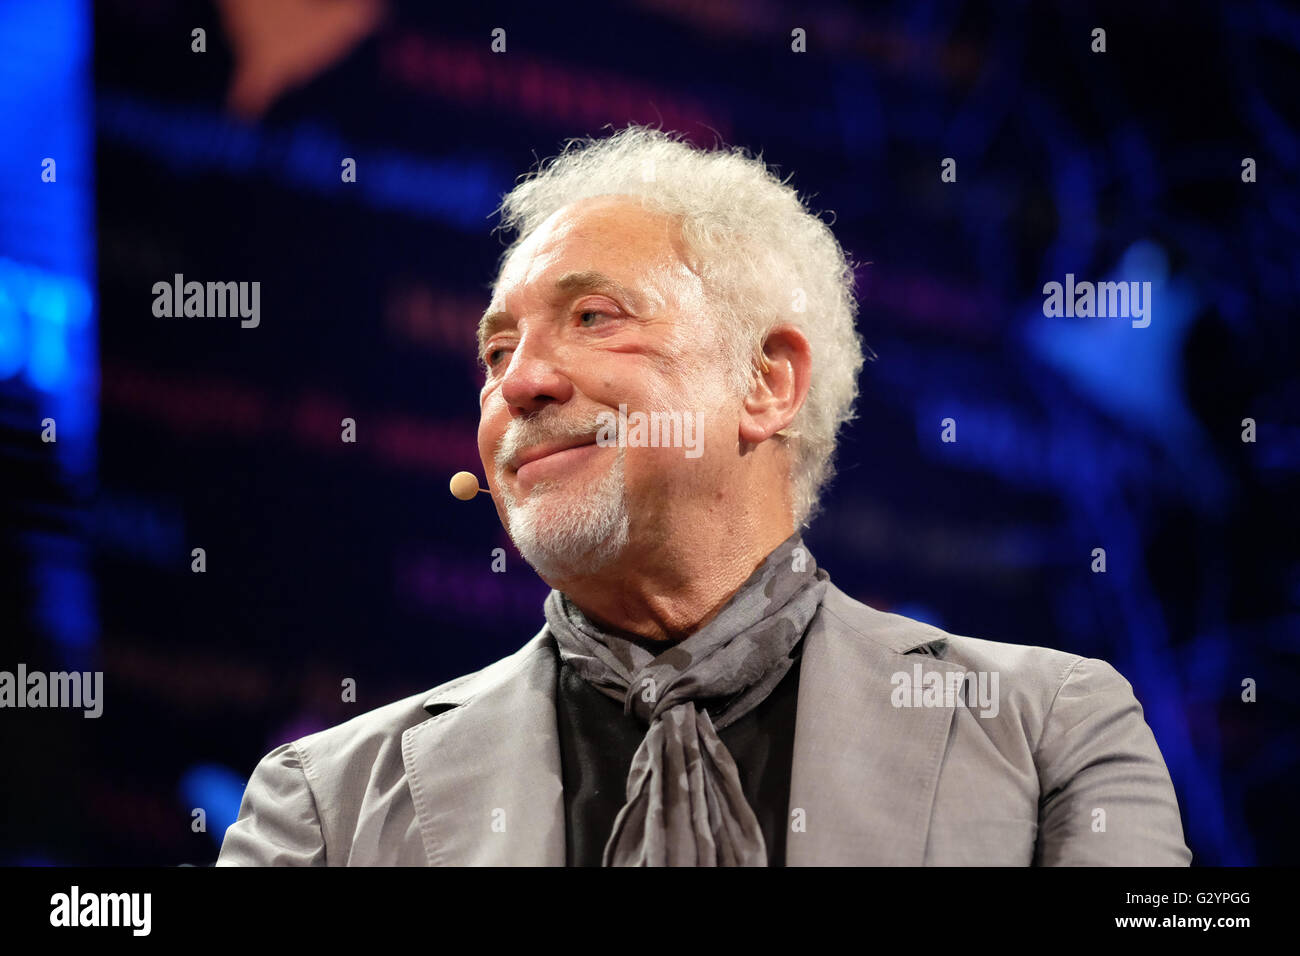 Hay Festival 2016, Wales, UK - Sunday 5th June 2016 -  Tom Jones on stage at the Hay Festival before a sell out - Stock Image